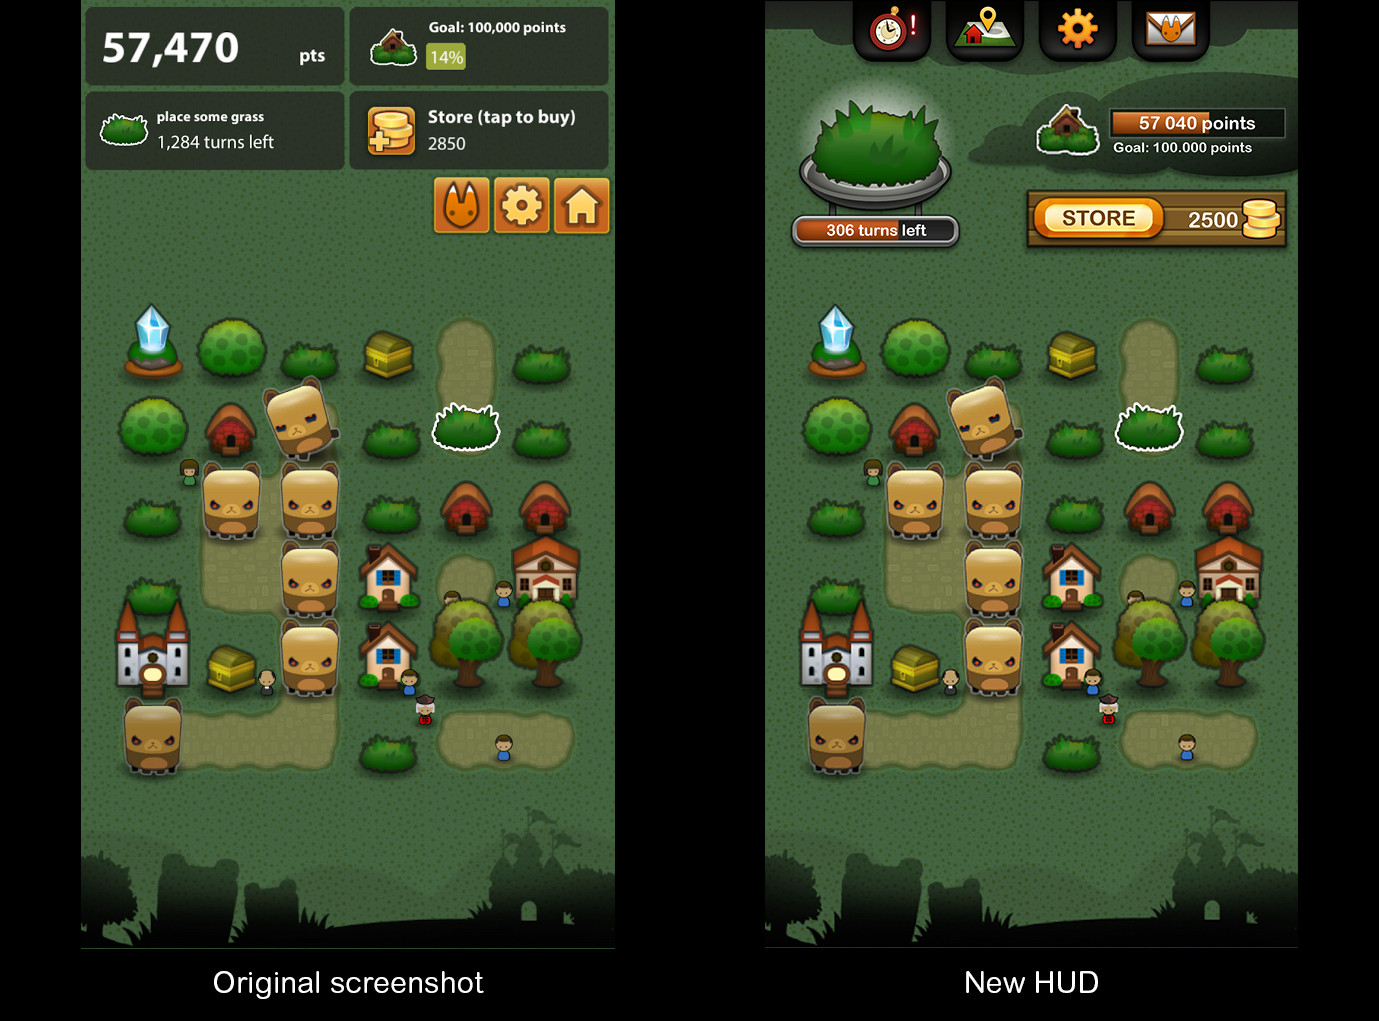 On the left, a screenshot from the mobile game Triple Town.